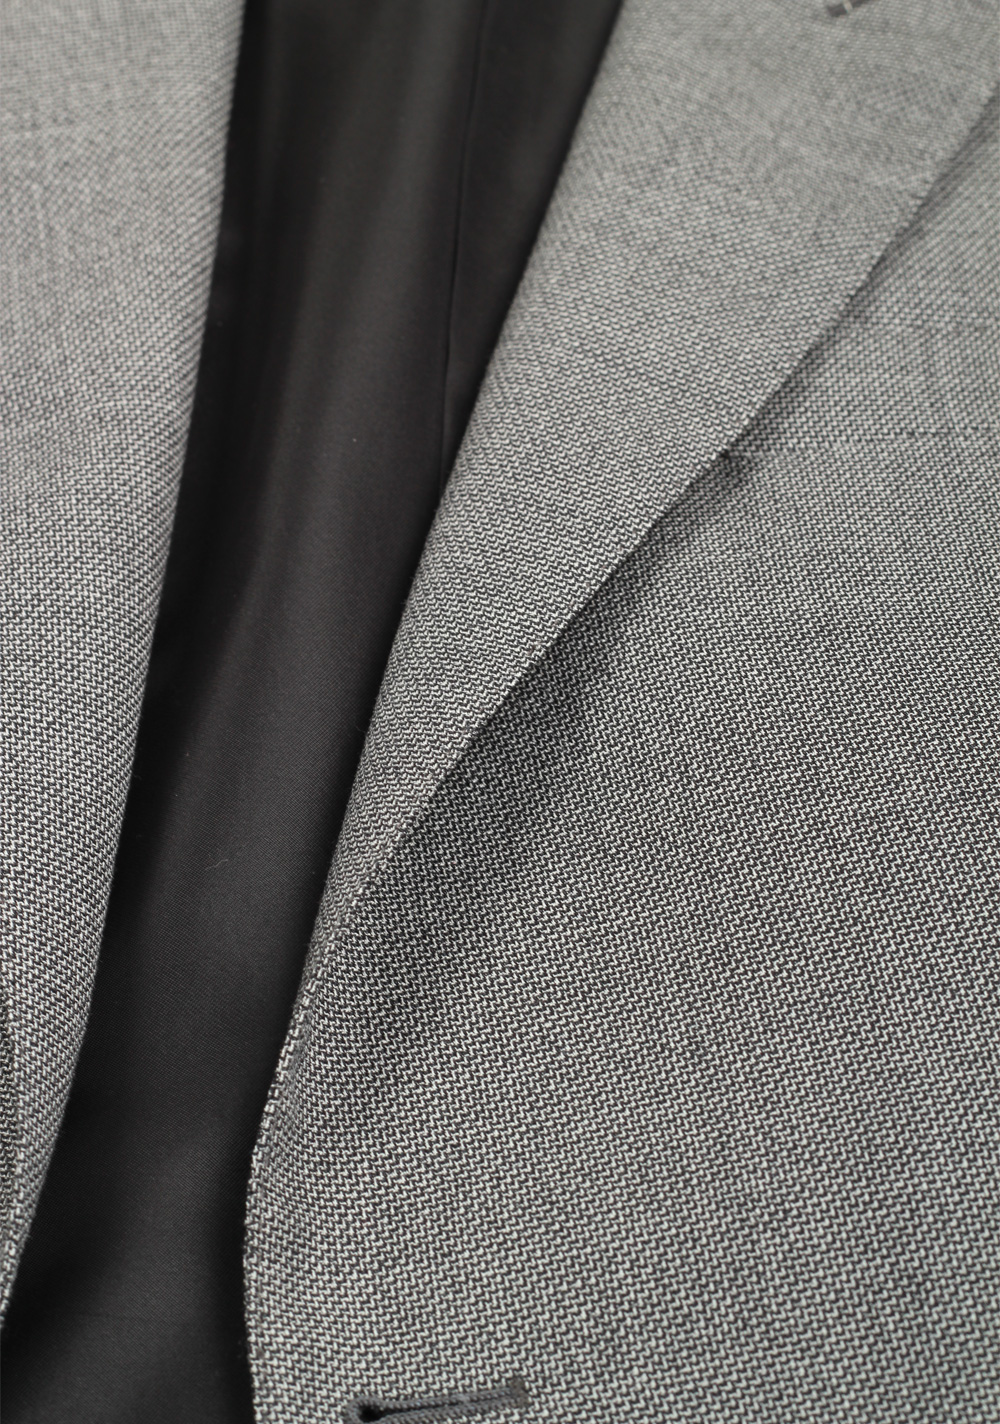 TOM FORD O'Connor Gray Suit Size 52 / 42R U.S. Fit Y | Costume Limité